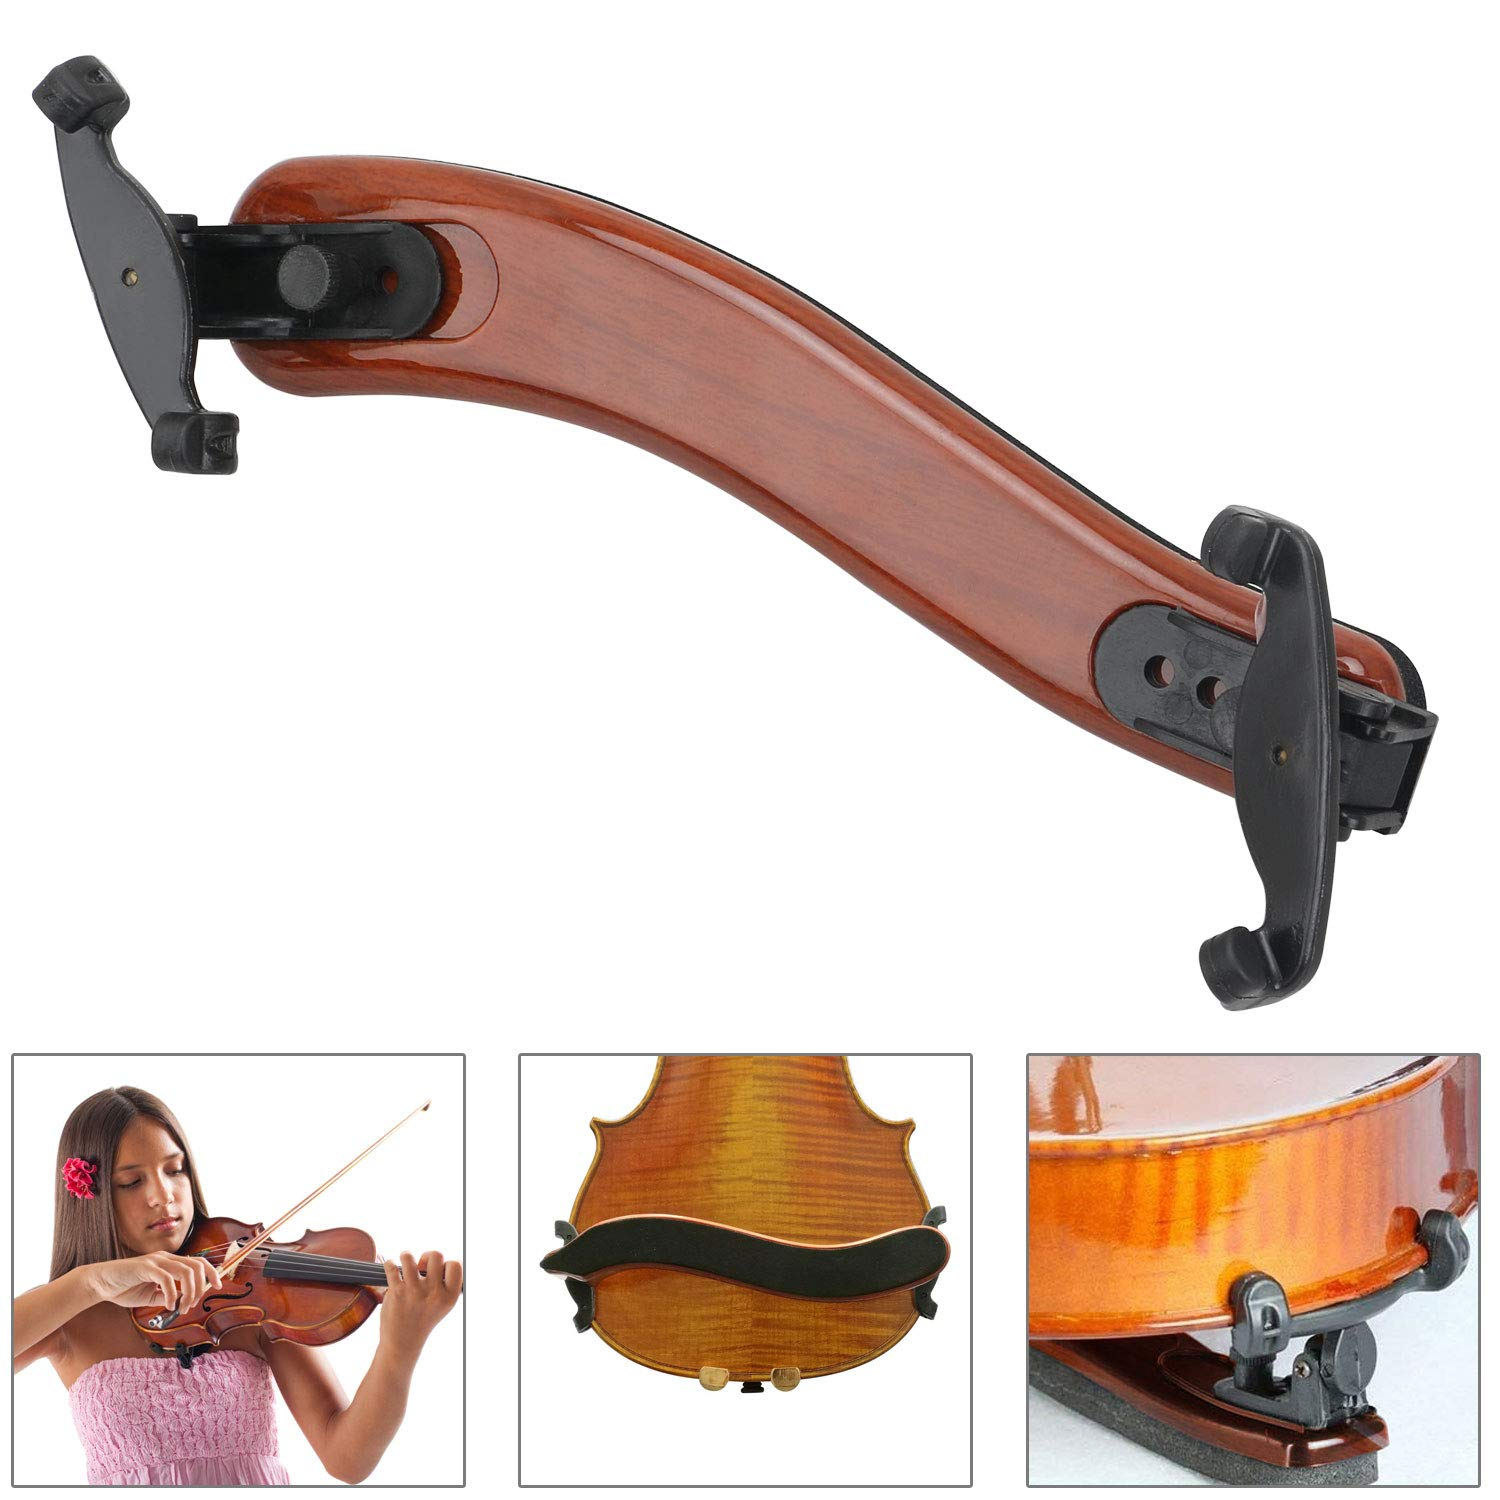 STYDDI Adjustable Violin Shoulder Rest for 4/4, 3/4 Sizes, Collapsible, Universal Violin Shoulder Pad for Height and Angle